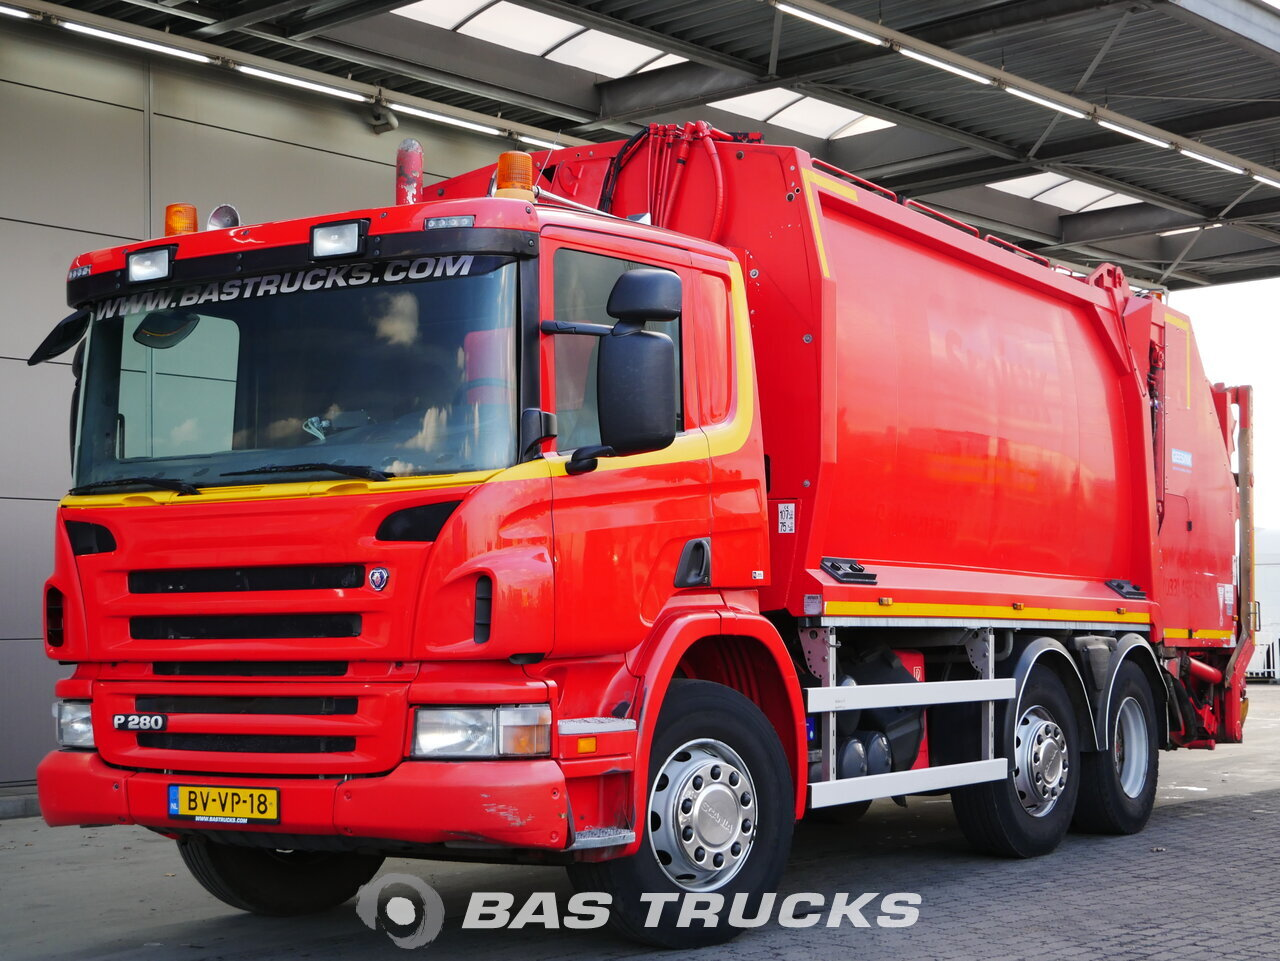 For sale at BAS Trucks: Scania P280 6X2 03/2009